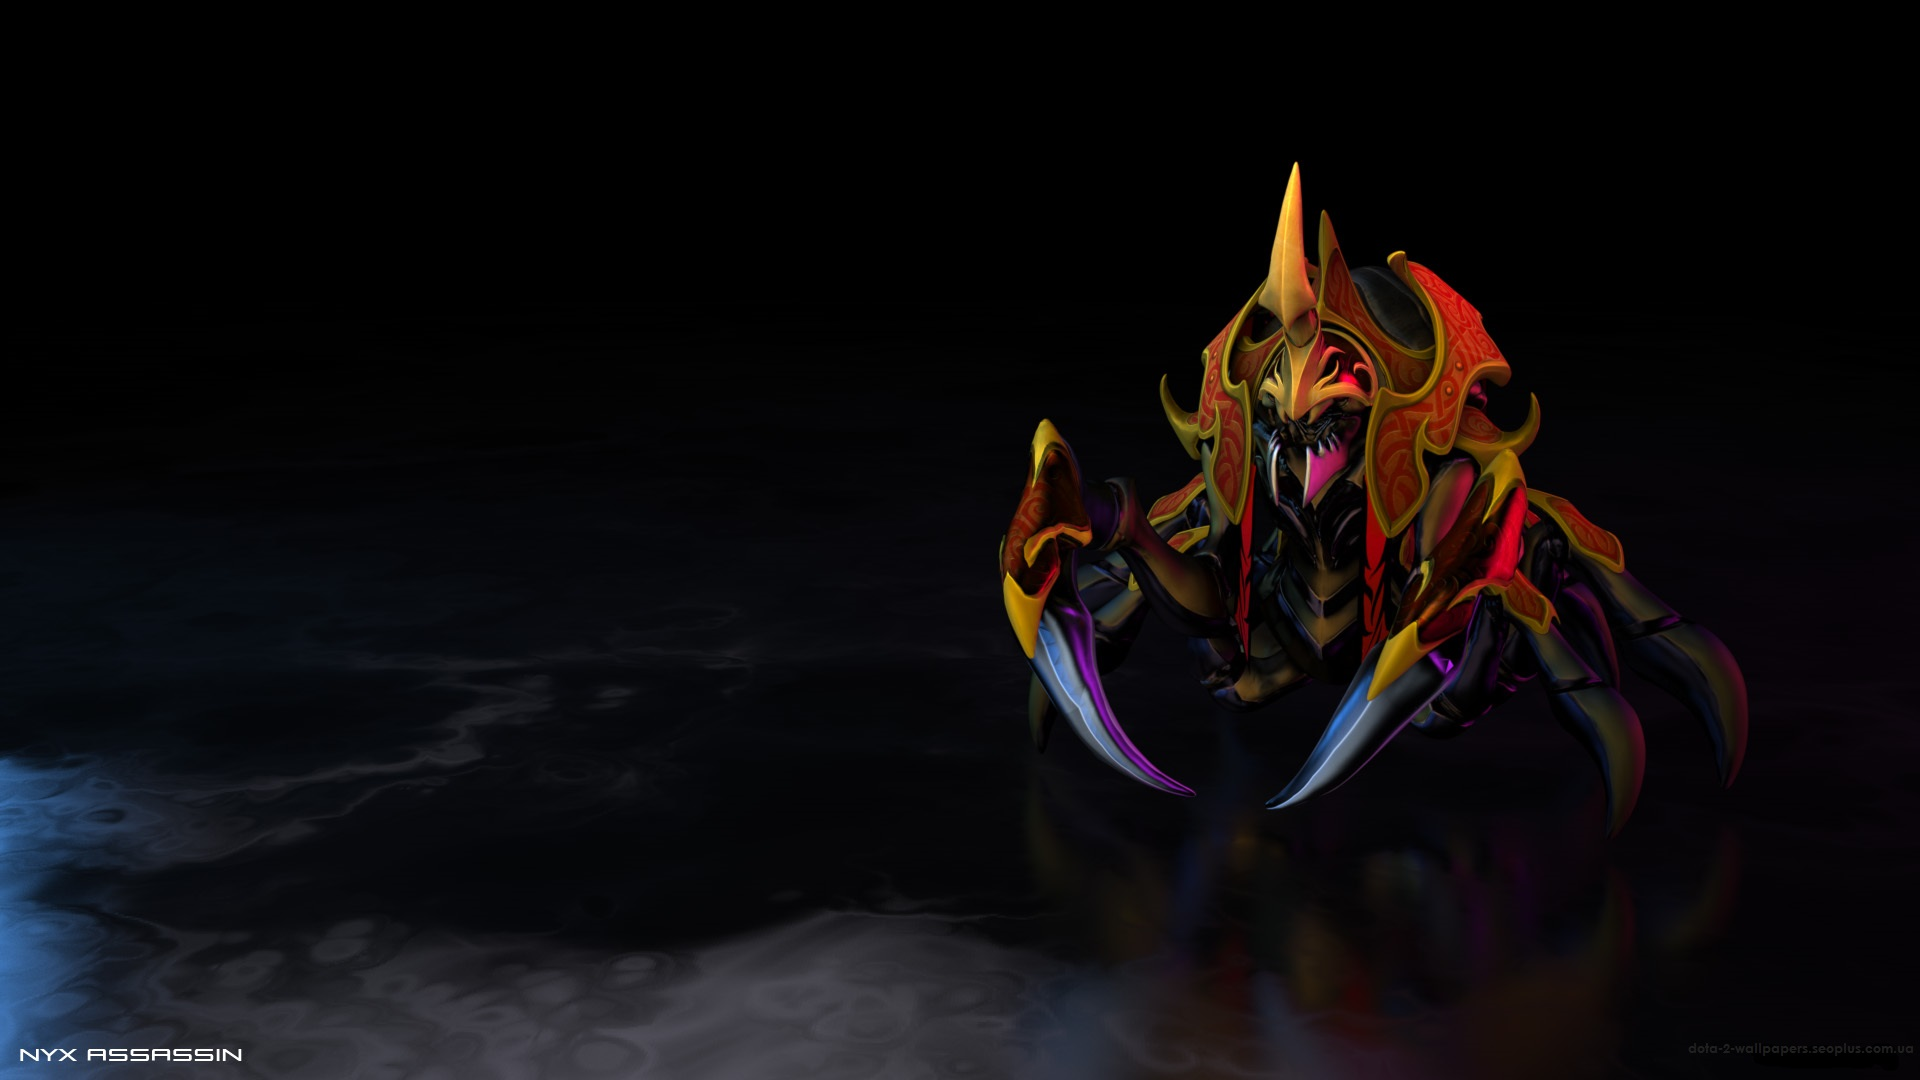 dota2 wallpapers.seoplus.com.ua 194